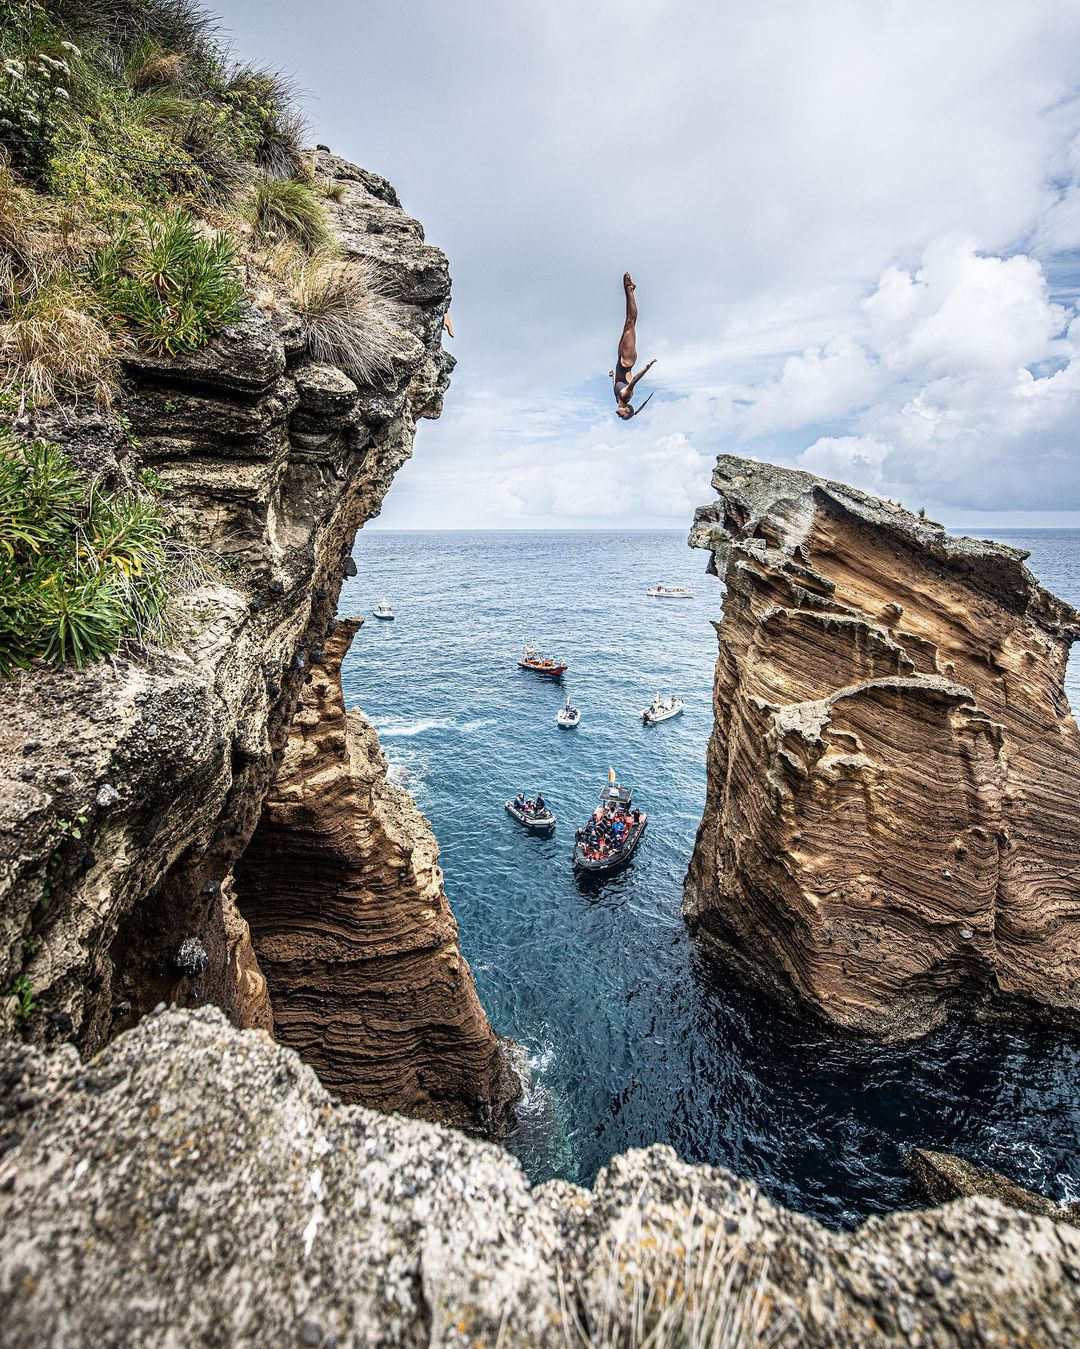 A woman doing acrobatics during cliff diving.